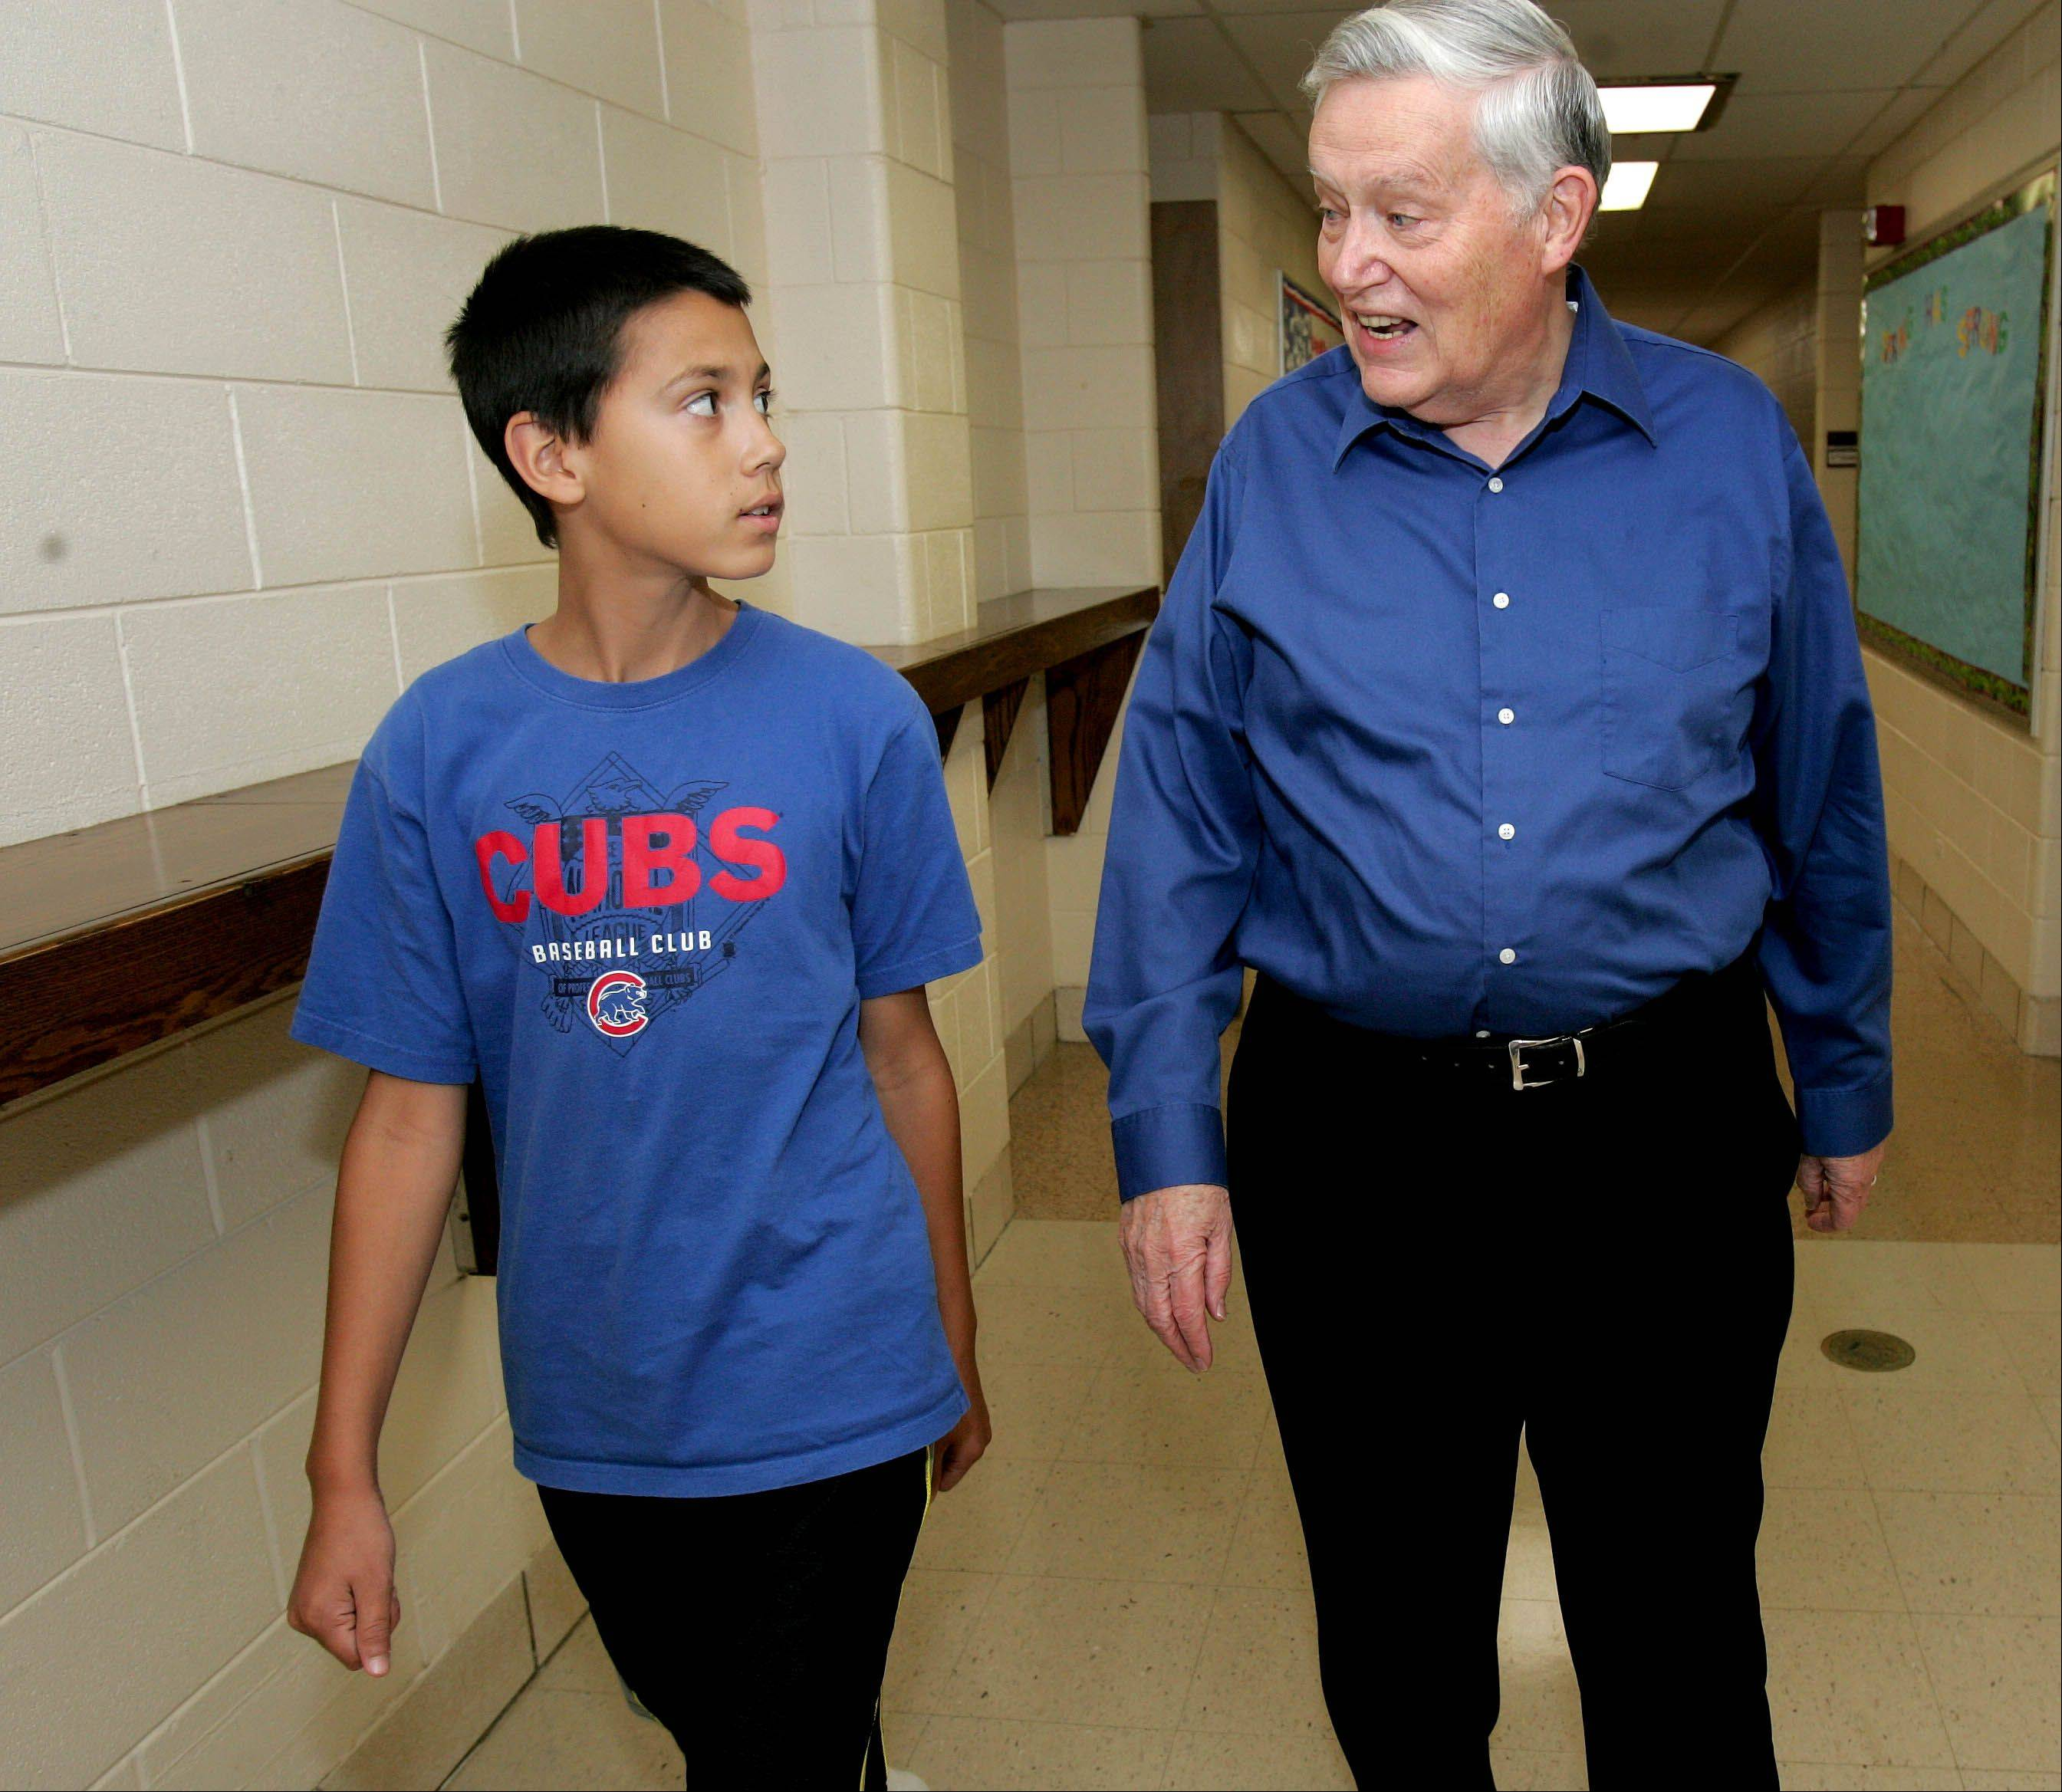 Ken Black of Roselle walks down the hall with Joey Sandoval, 12, at Trinity Lutheran Church in Roselle, where Joey is enrolled in summer camp. Joey�s mentor, Black, started the Adults Involved in Mentoring Students while working with the senior ministry at the church nine years ago. AIMS now serves students in five elementary districts, Lake Park High School District 108 and Trinity Lutheran School.